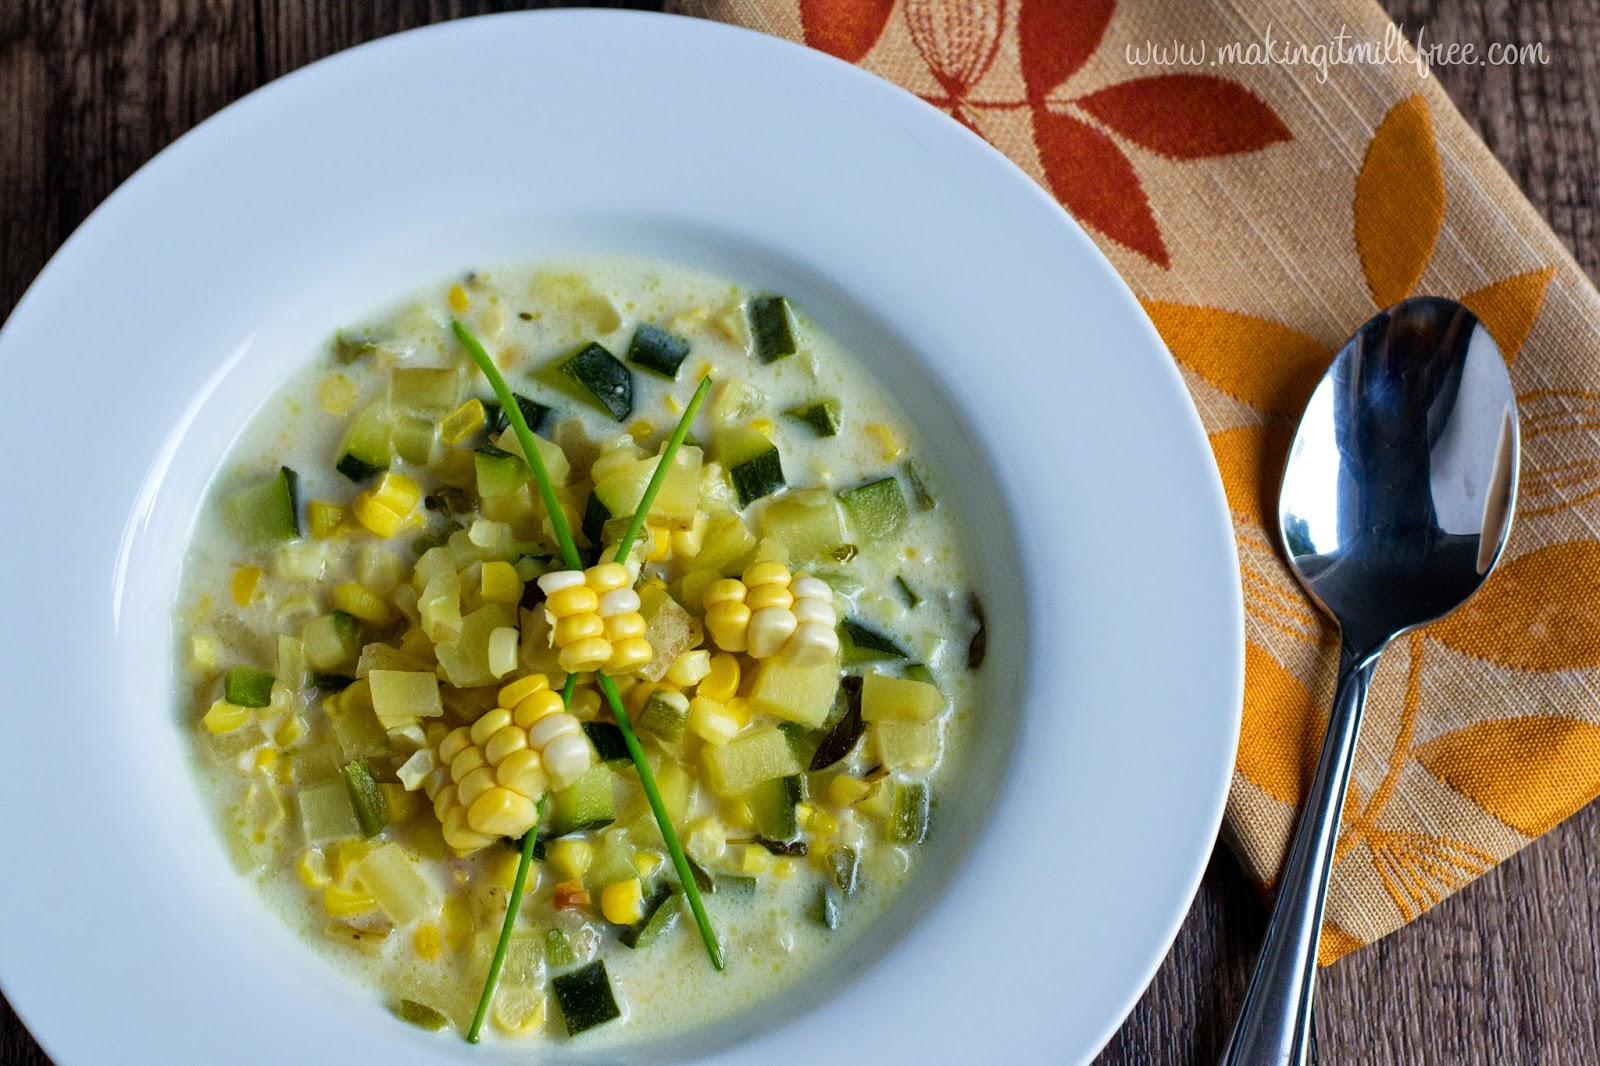 #glutenfree #vegan #chowder #dairyfree #summerrecipes